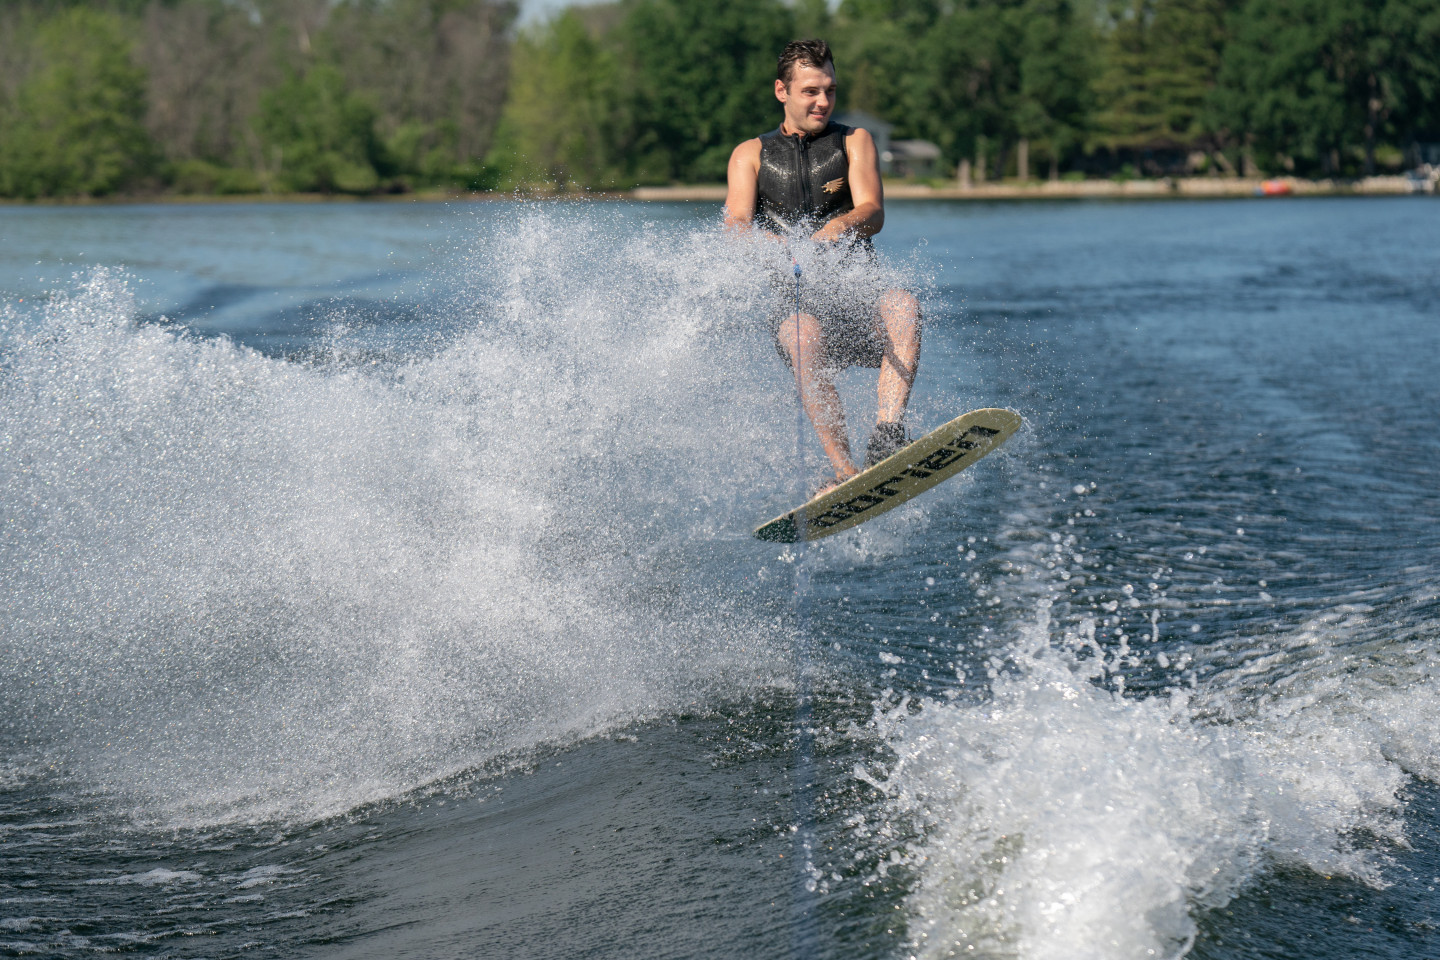 A person jumps out of the water on a wakeboard.